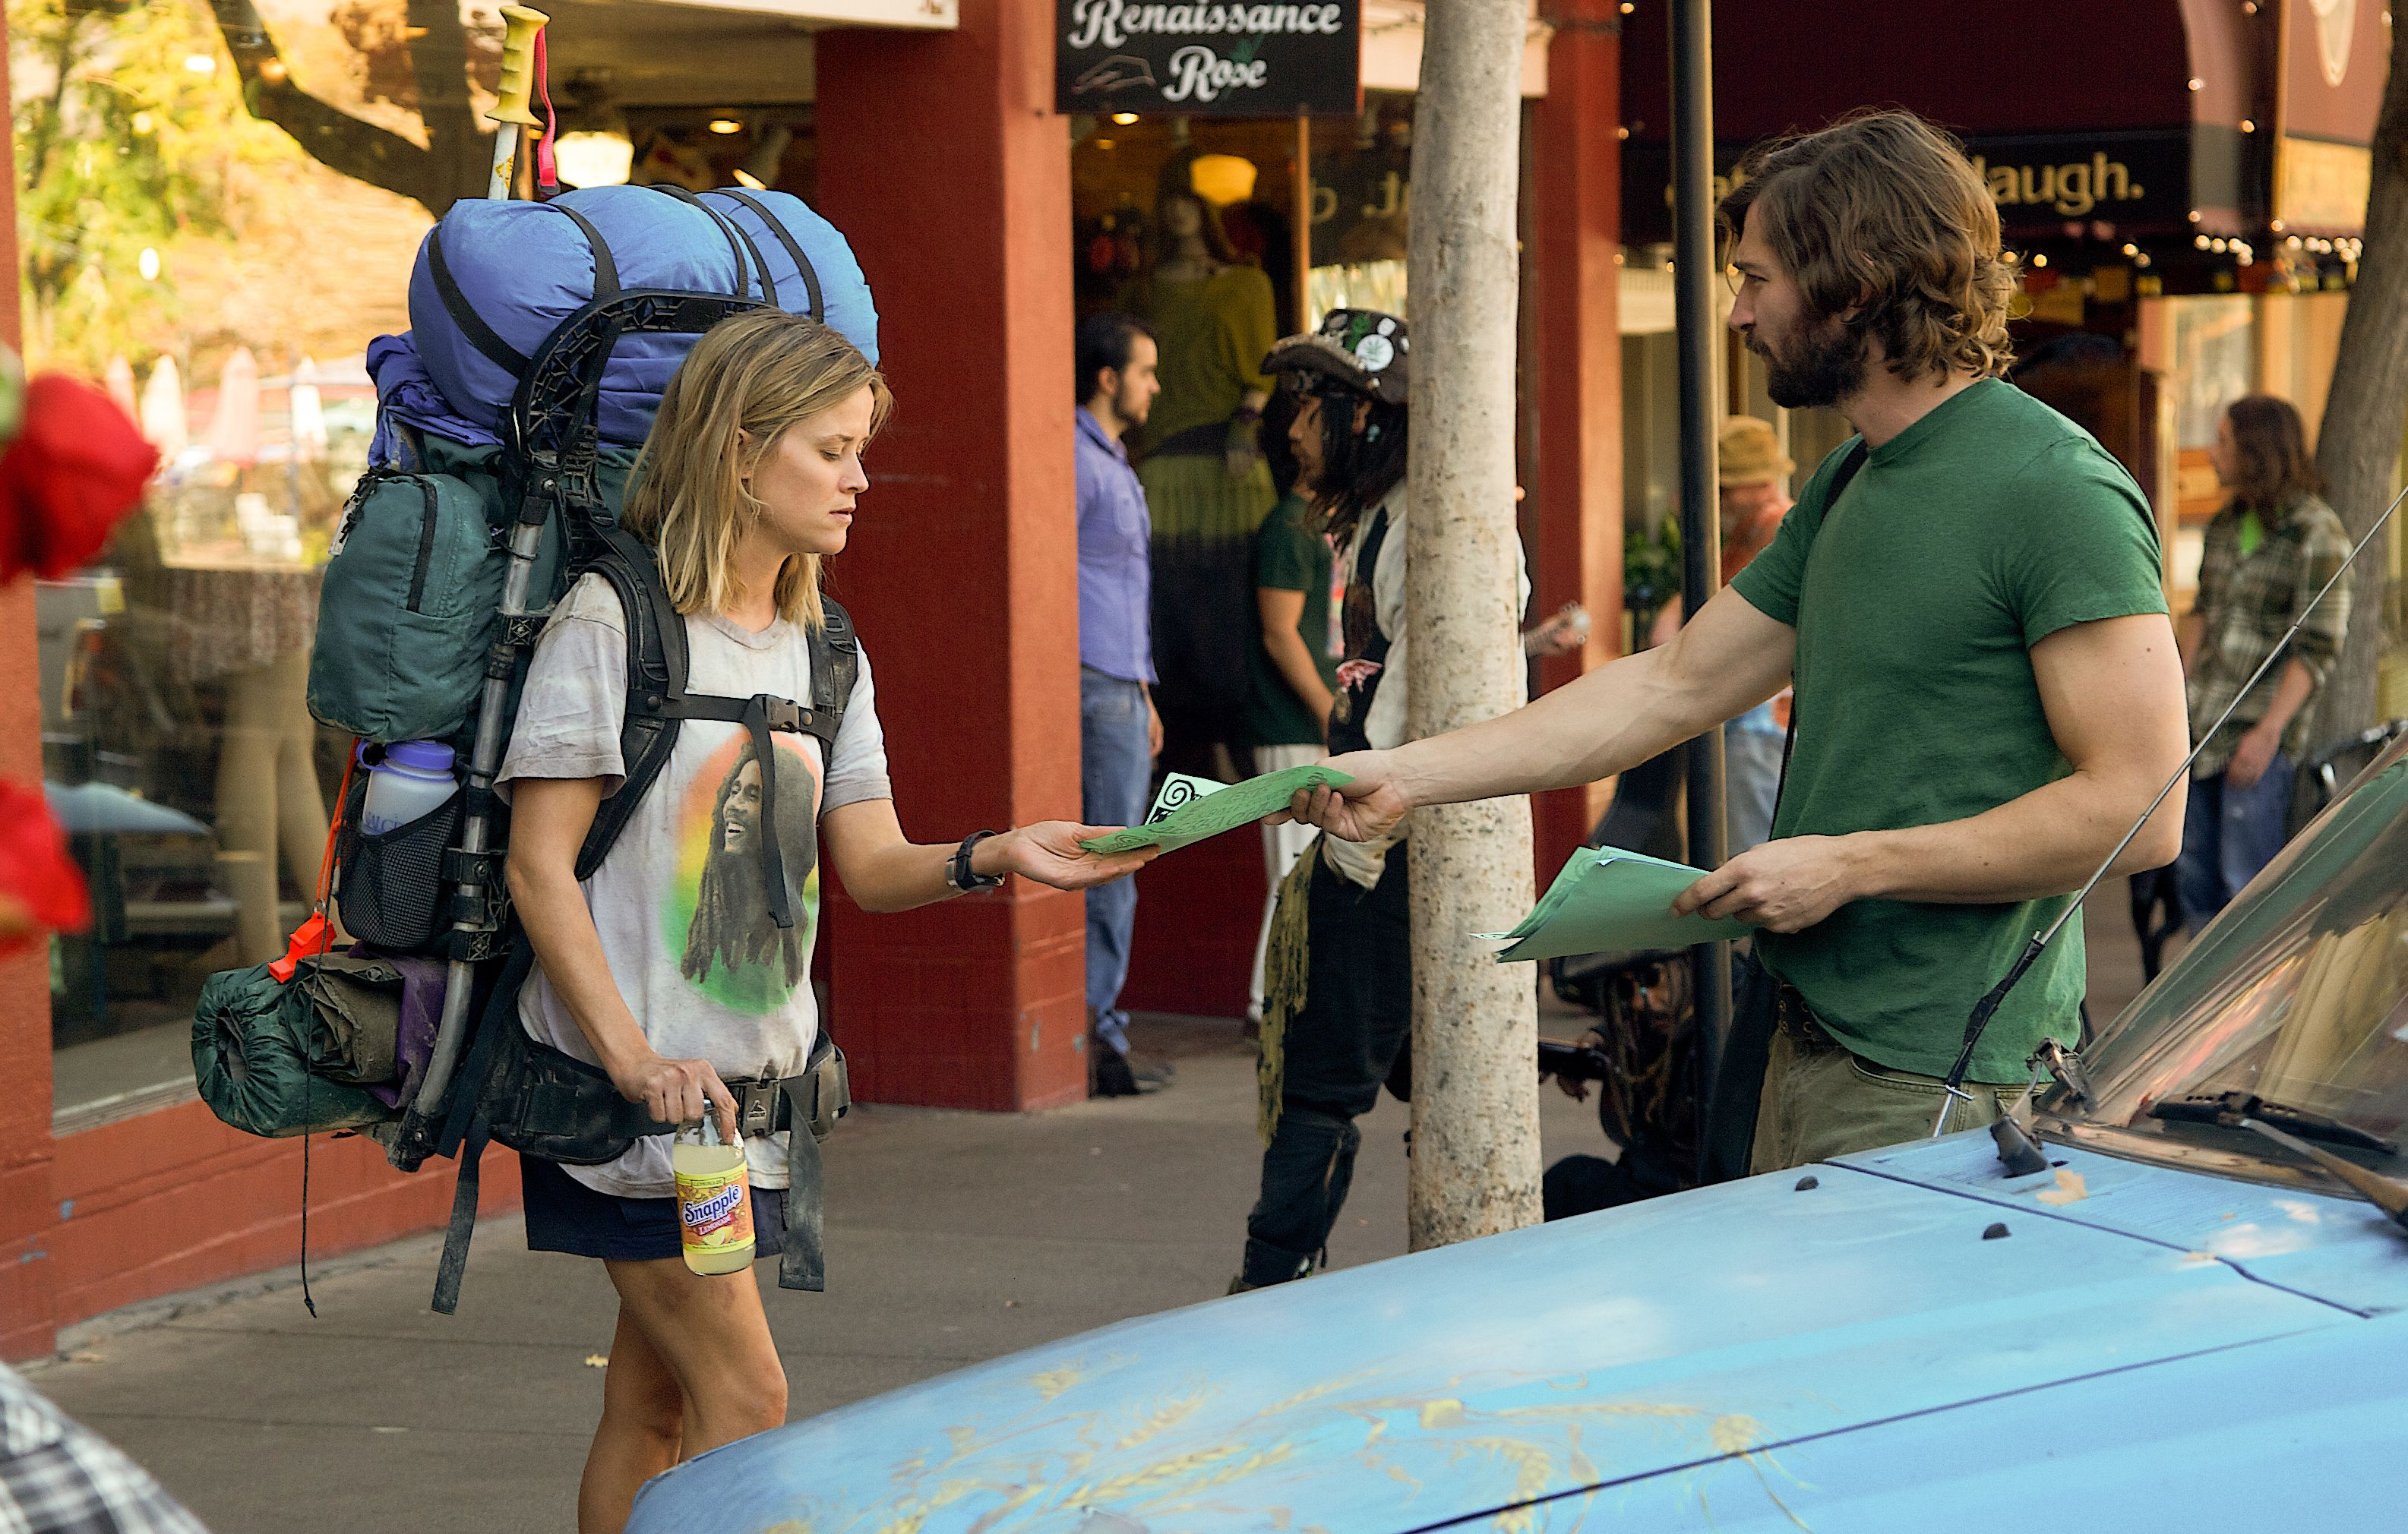 Reese Witherspoon and Michiel Huisman on the street in Wild